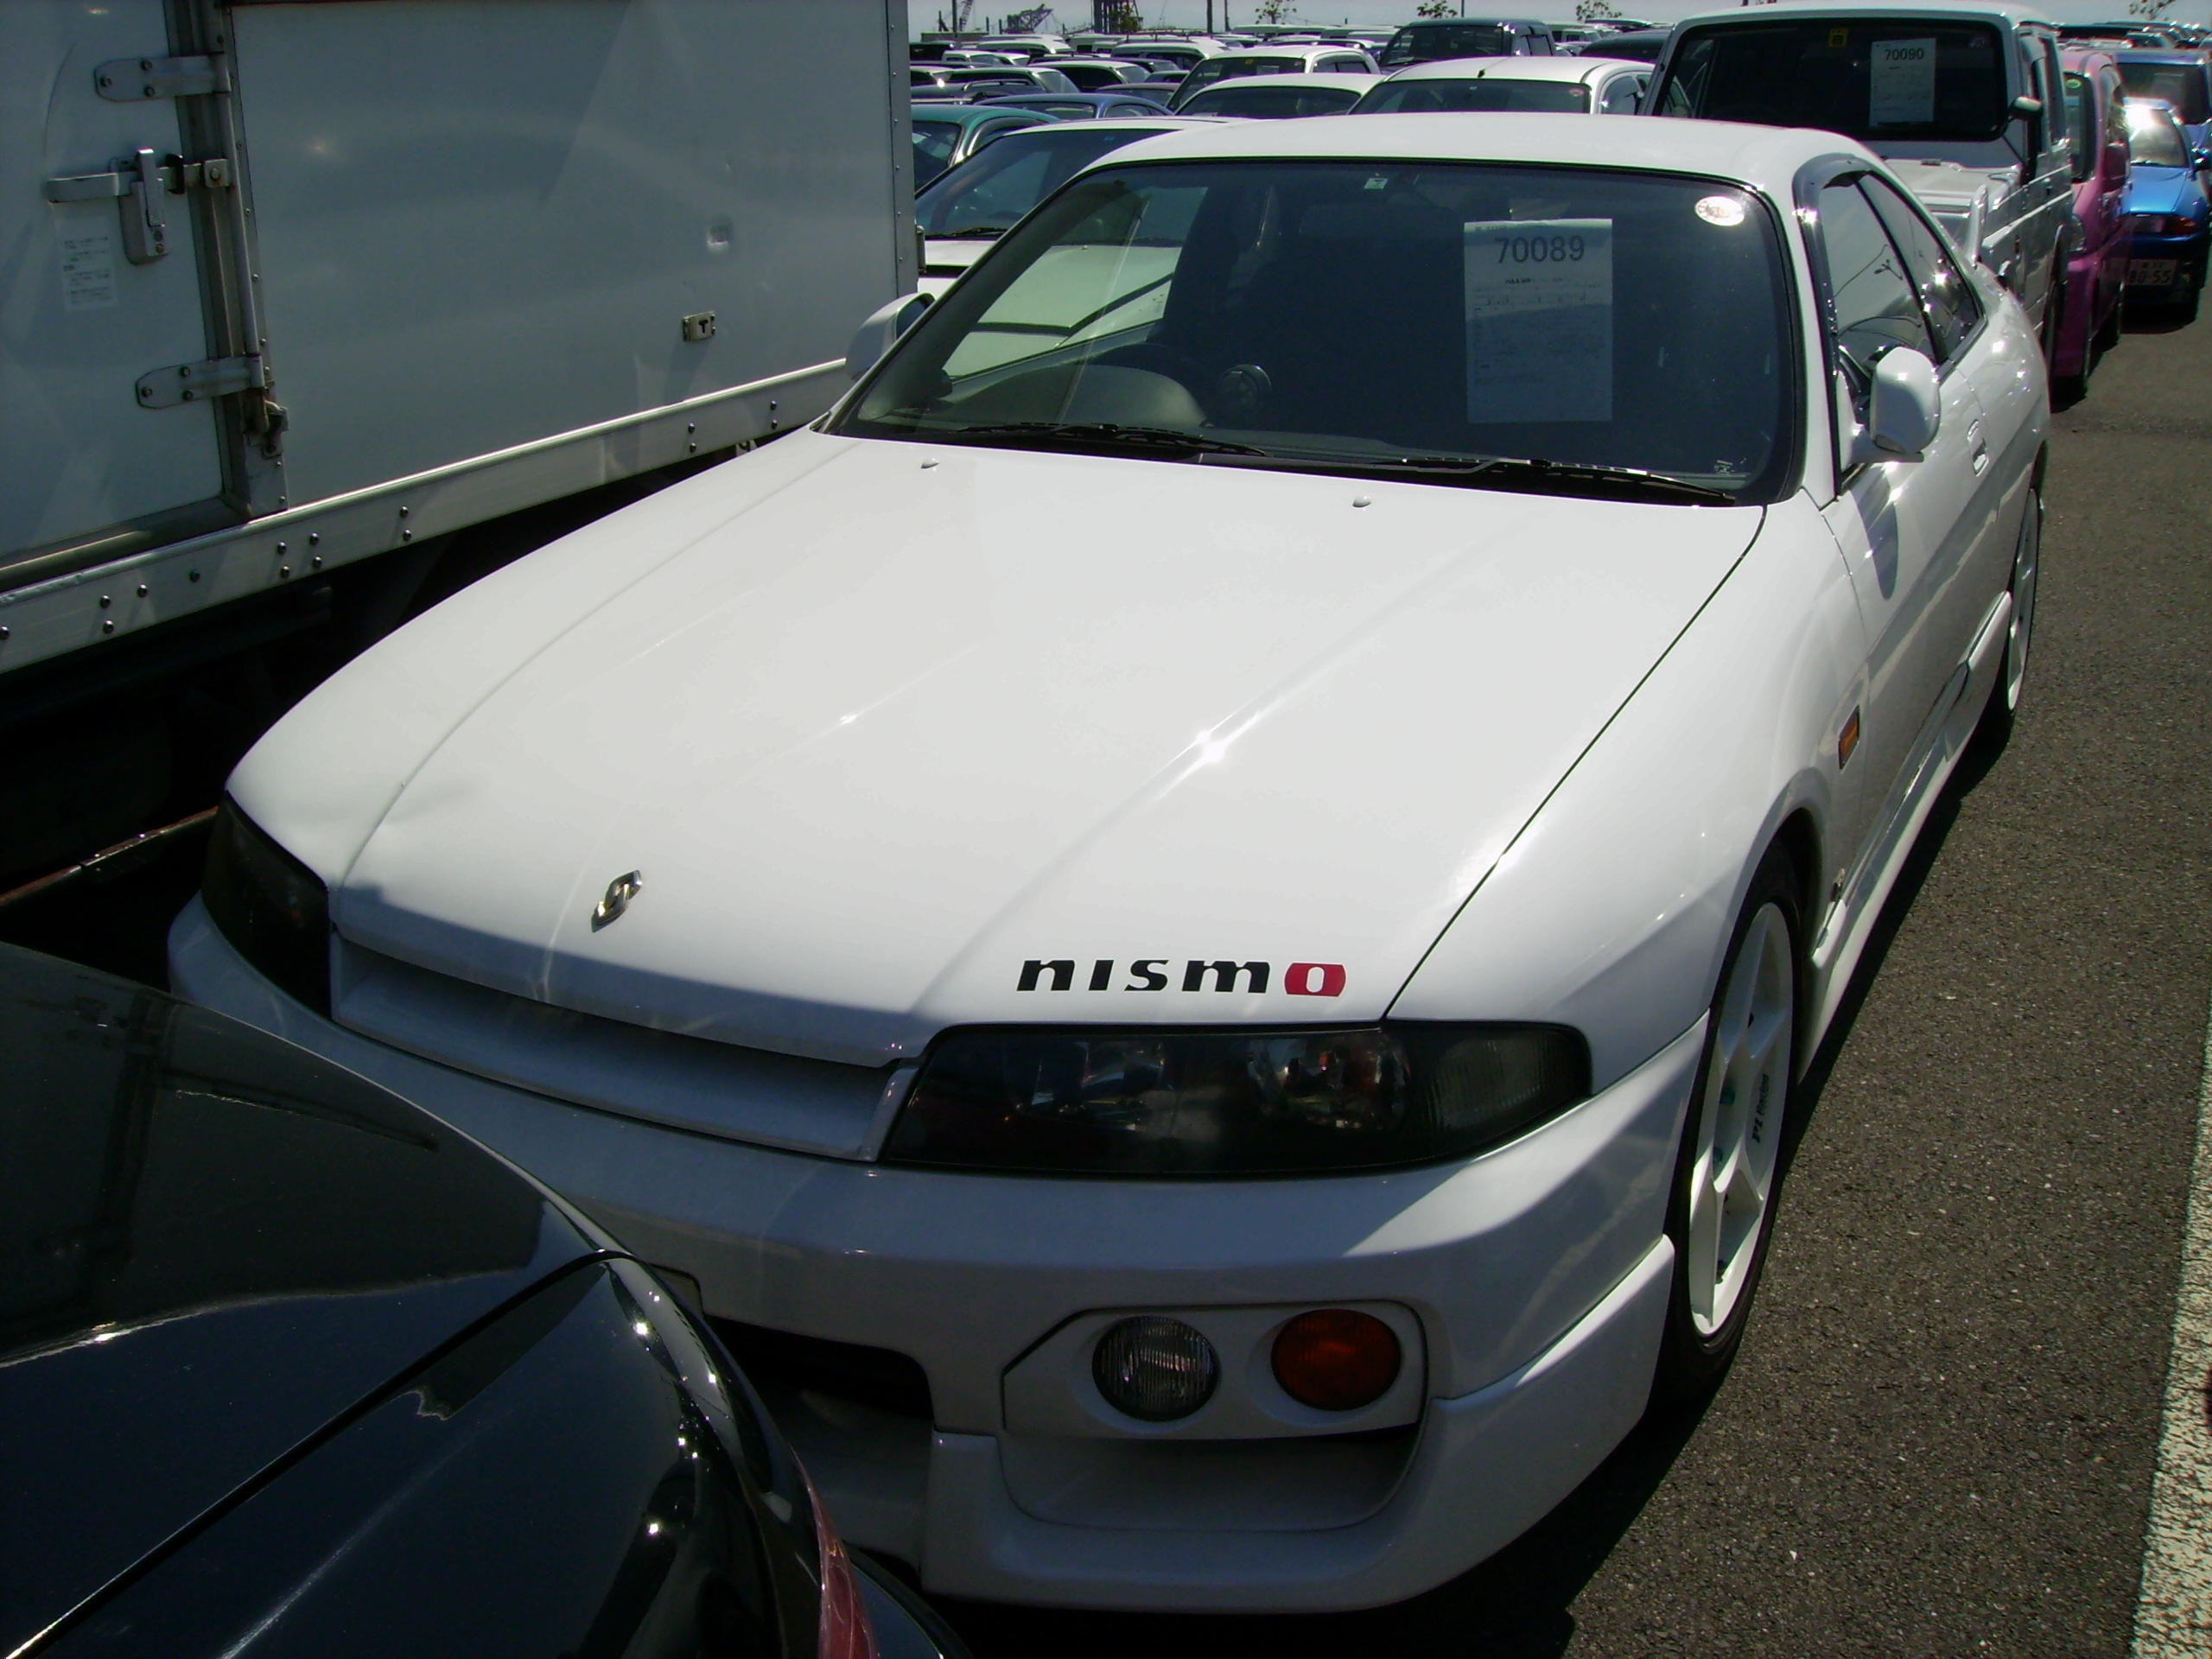 1996 Nissan Skyline R33 Gts-t front